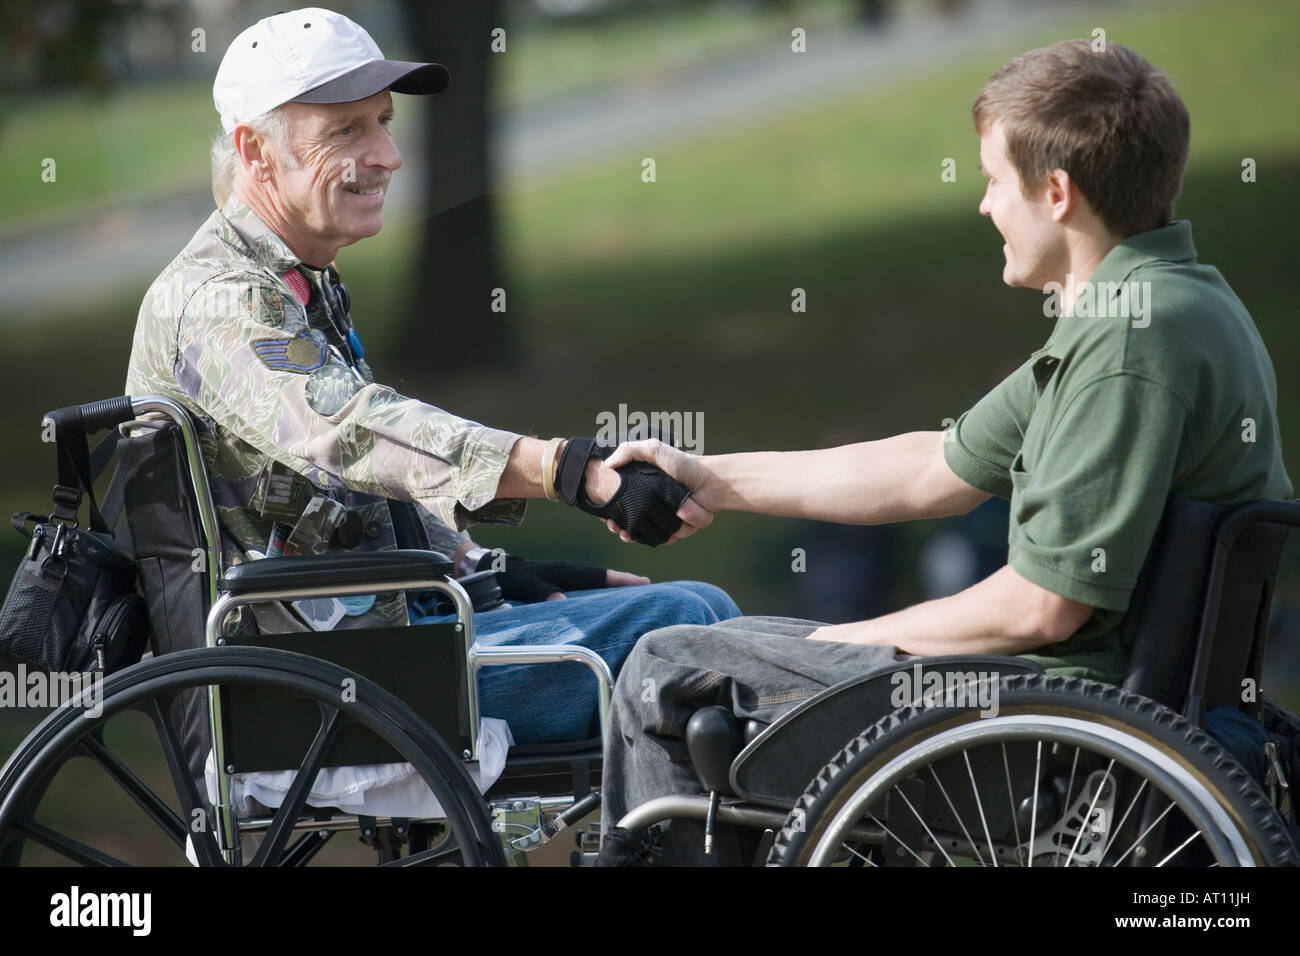 Two war veterans shaking hands with each other - Stock Image